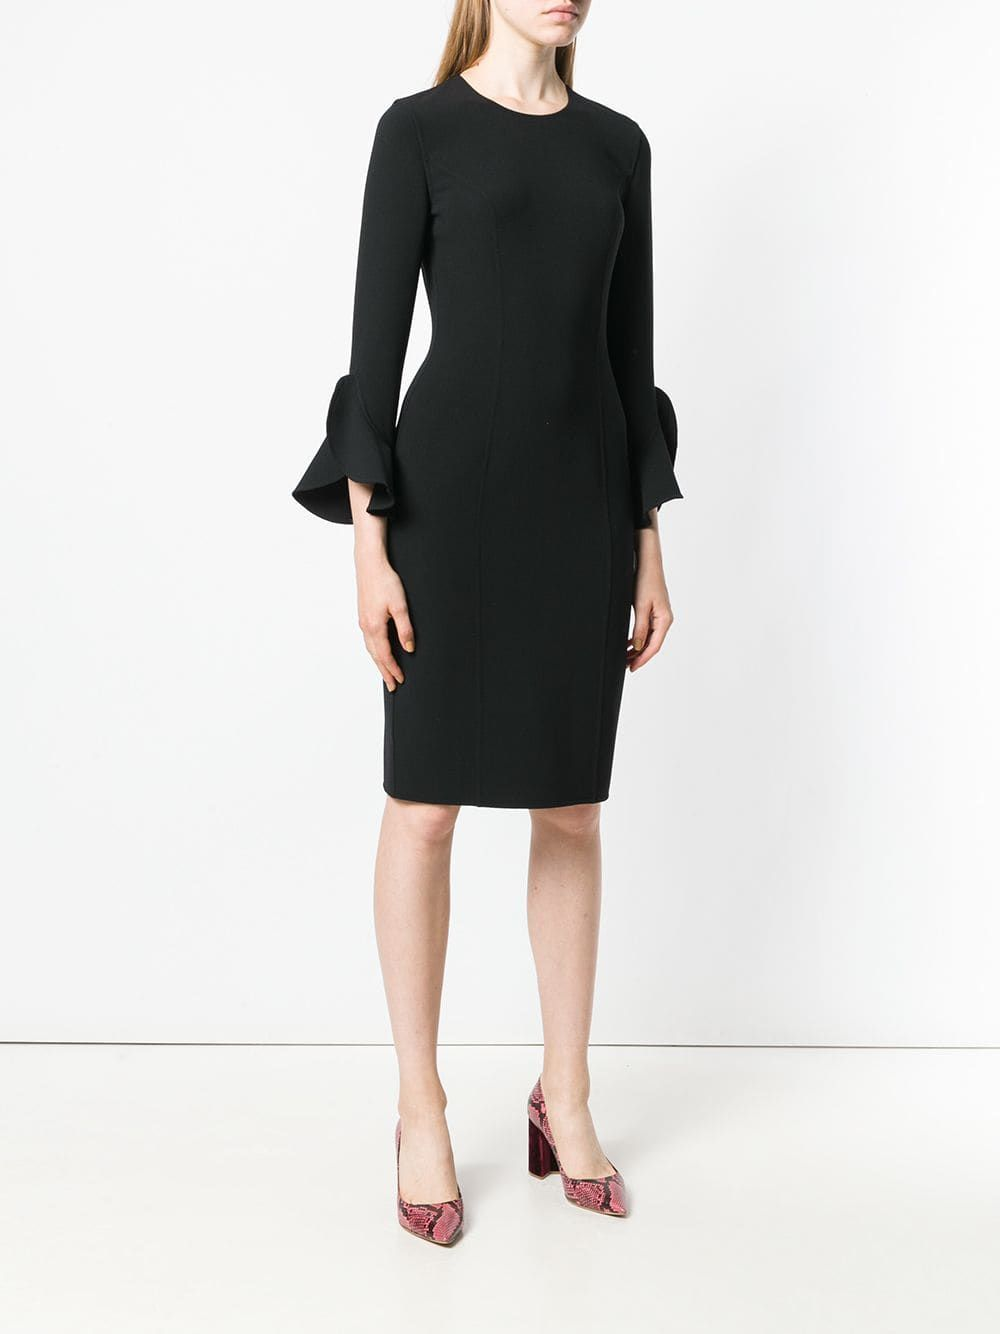 Michael Kors Collection Long Sleeve Fitted Dress Farfetch Com Long Sleeve Fitted Dress Job Interview Outfits For Women Job Interview Outfit [ 1334 x 1000 Pixel ]